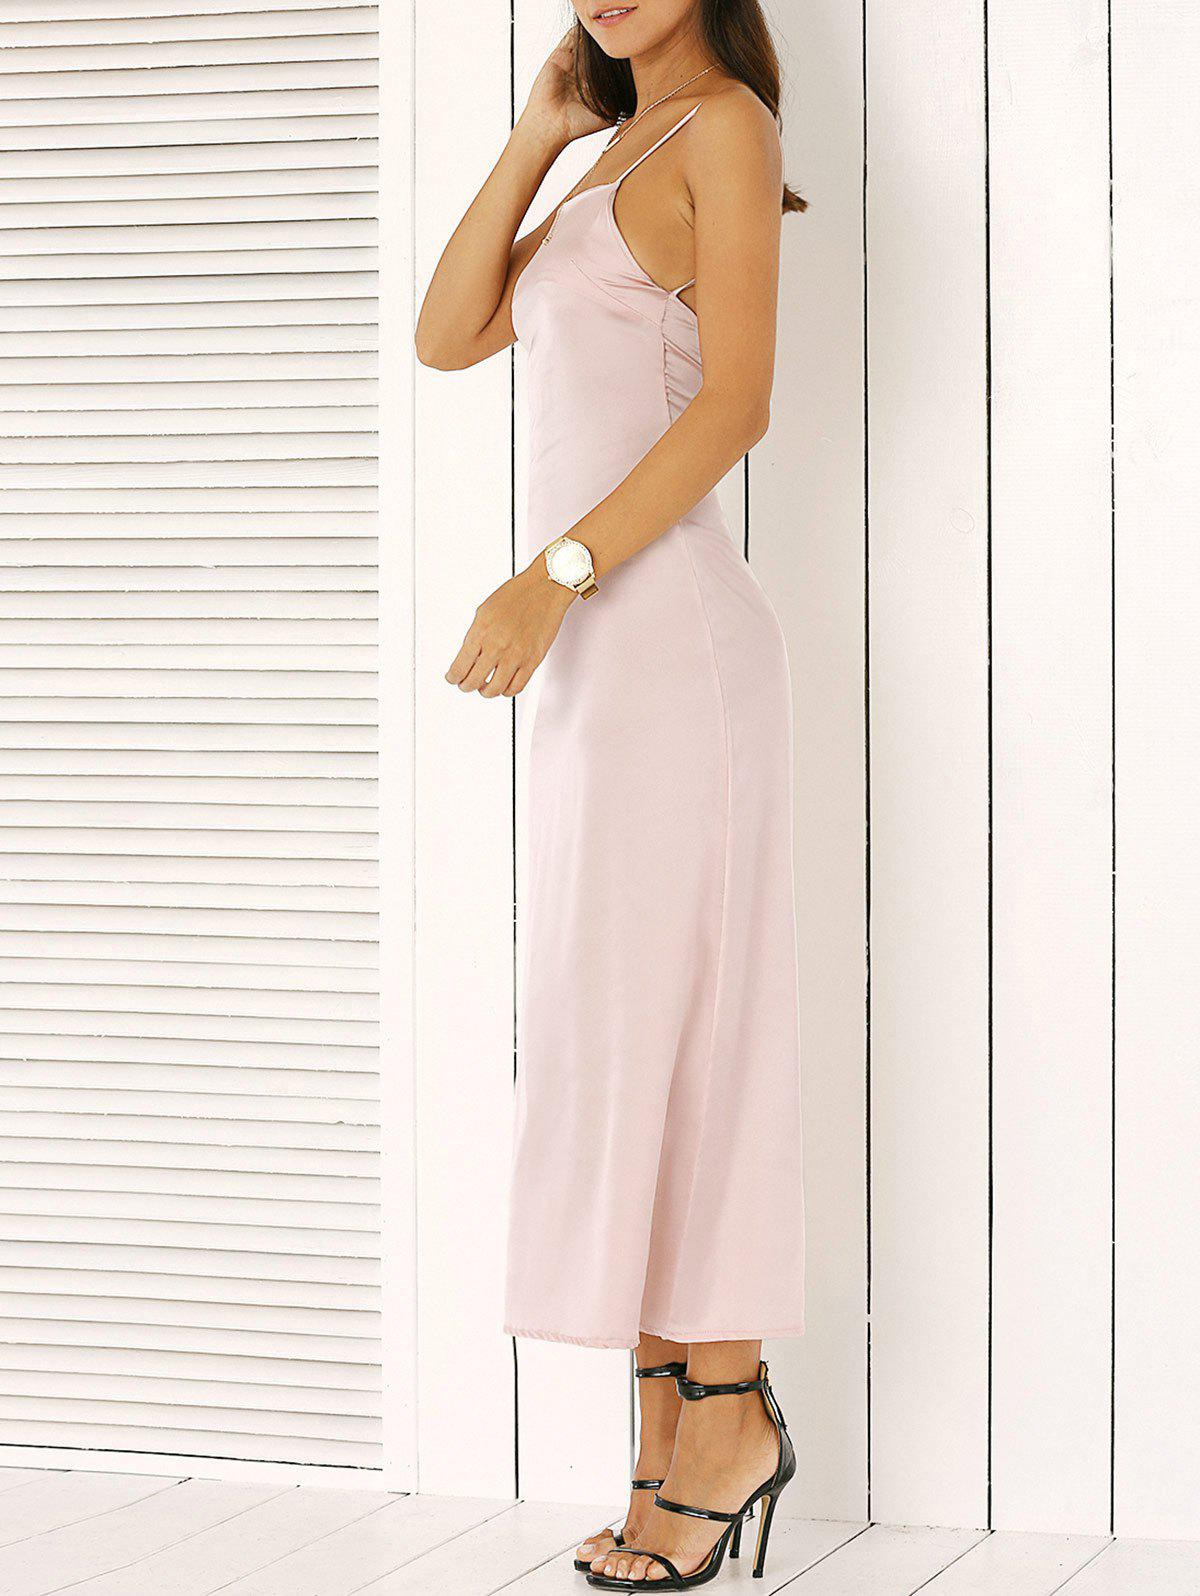 Spaghetti Strap Backless Slimming Maxi Dress